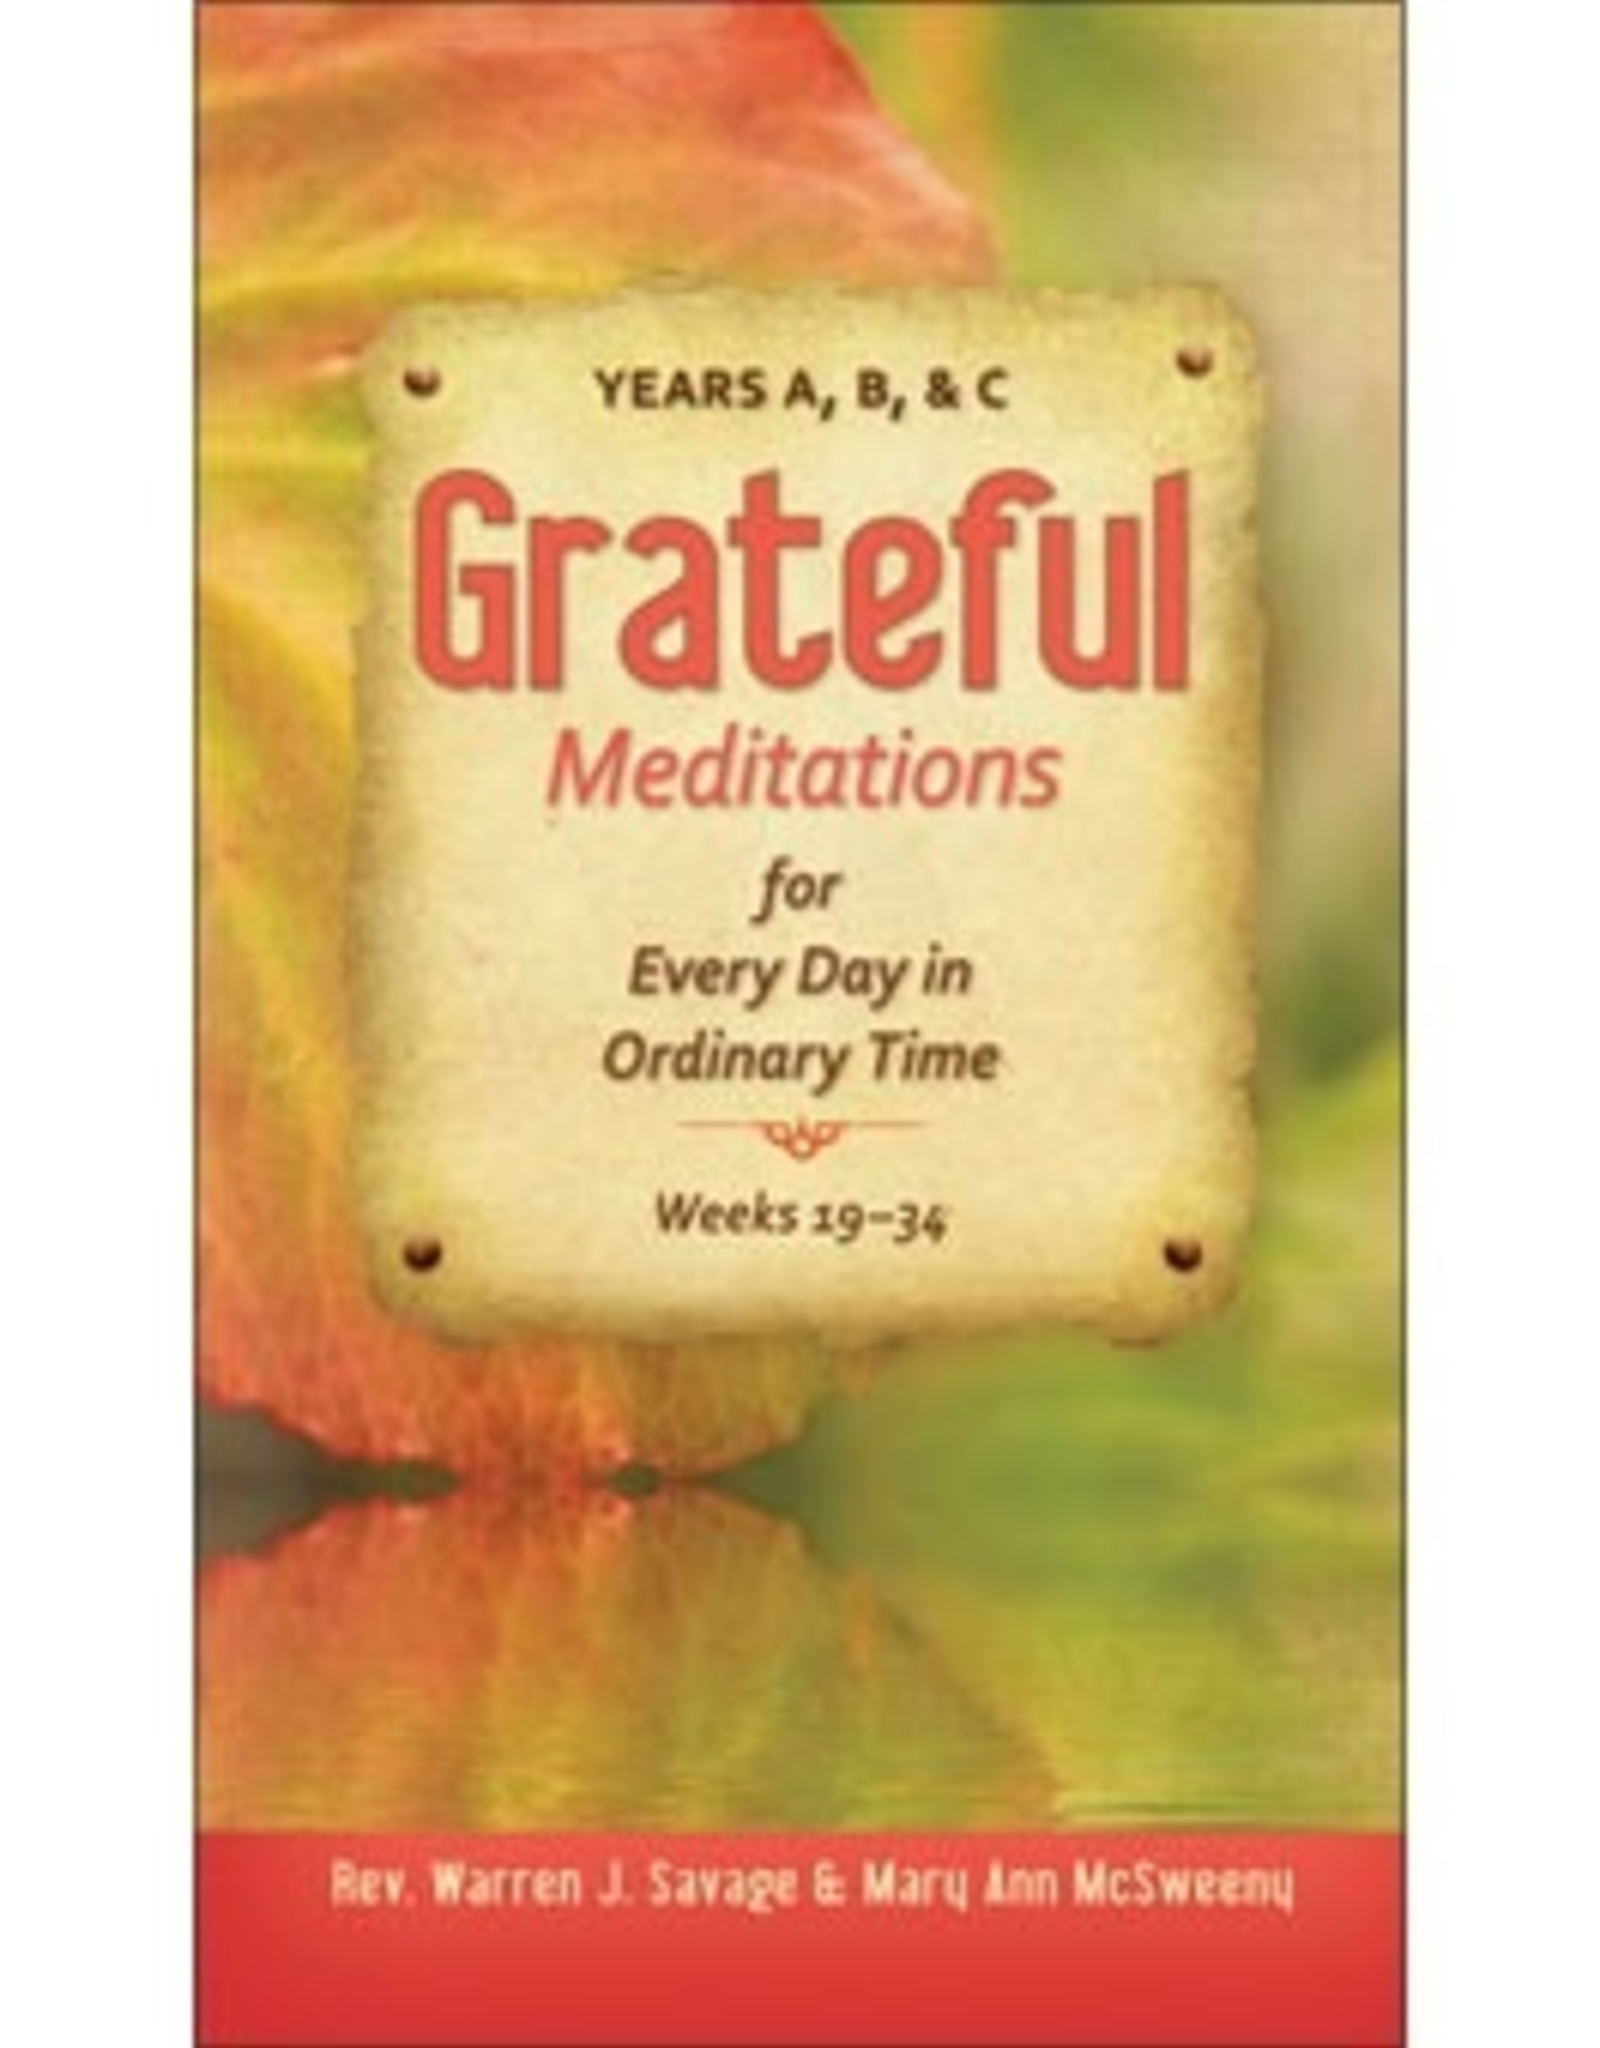 Liguori Grateful Meditations for Every Day in Ordinary Time:  Years A, B & C, by Warren Savage and Mary Ann McSweeney (paperback)